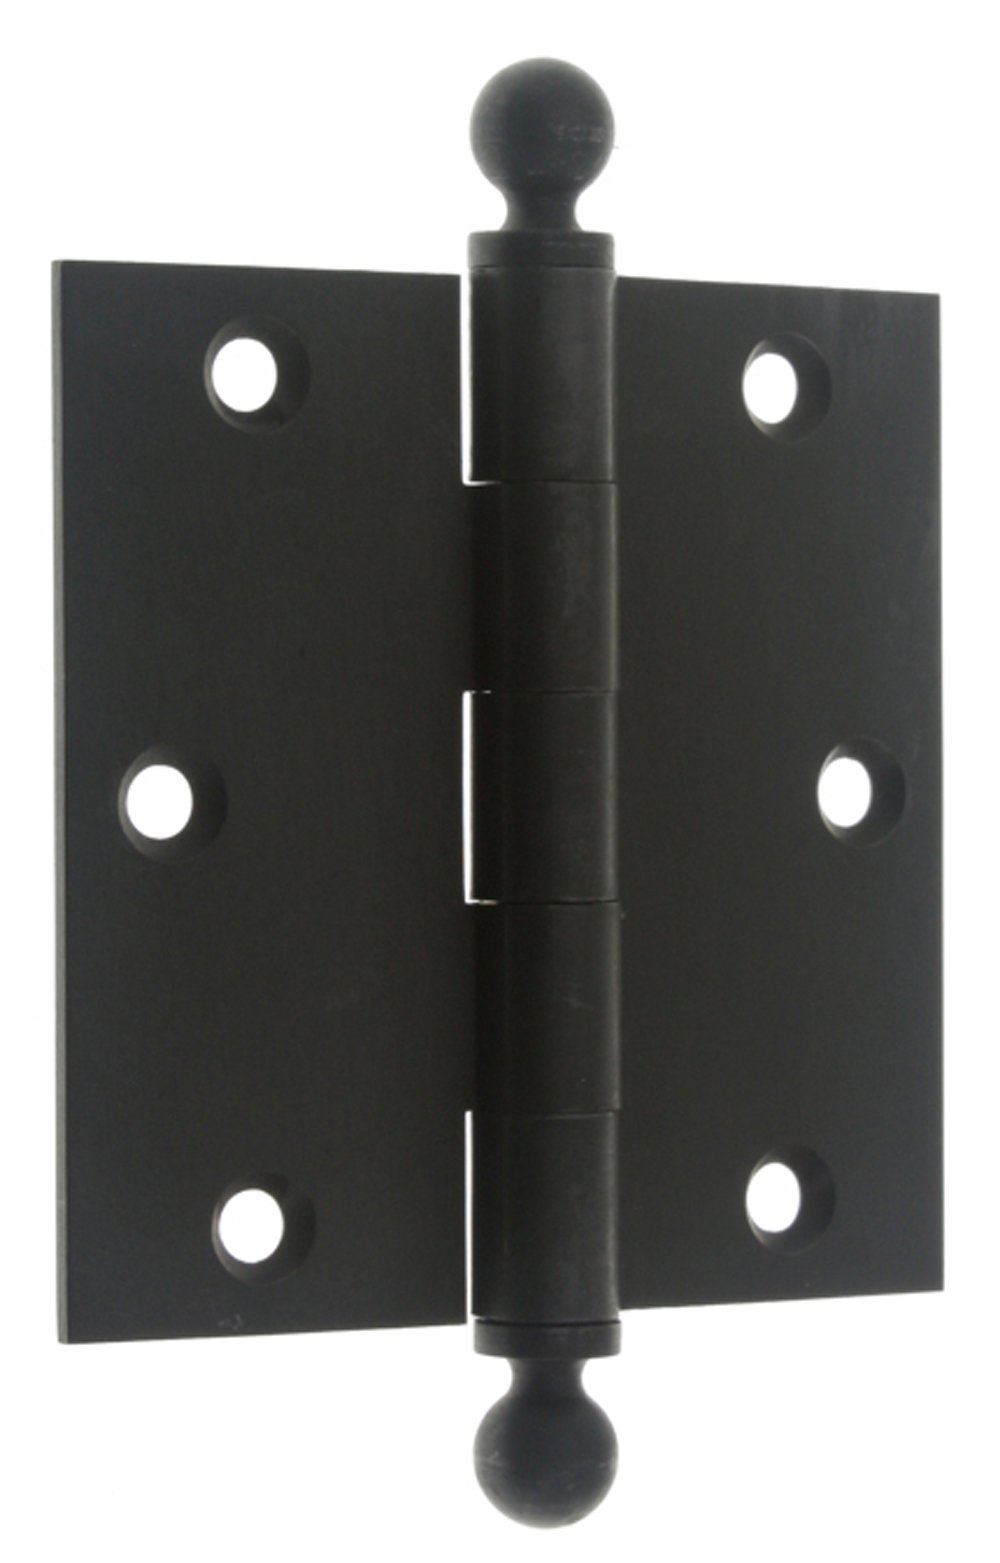 IDHBA 80102-10B Professional Grade Quality Solid Brass x 3-1/2'' Loose Pin Hinges (Pair), 3-1/2 x 3-1/2-Inch, Oil-Rubbed Bronze by IDHBA